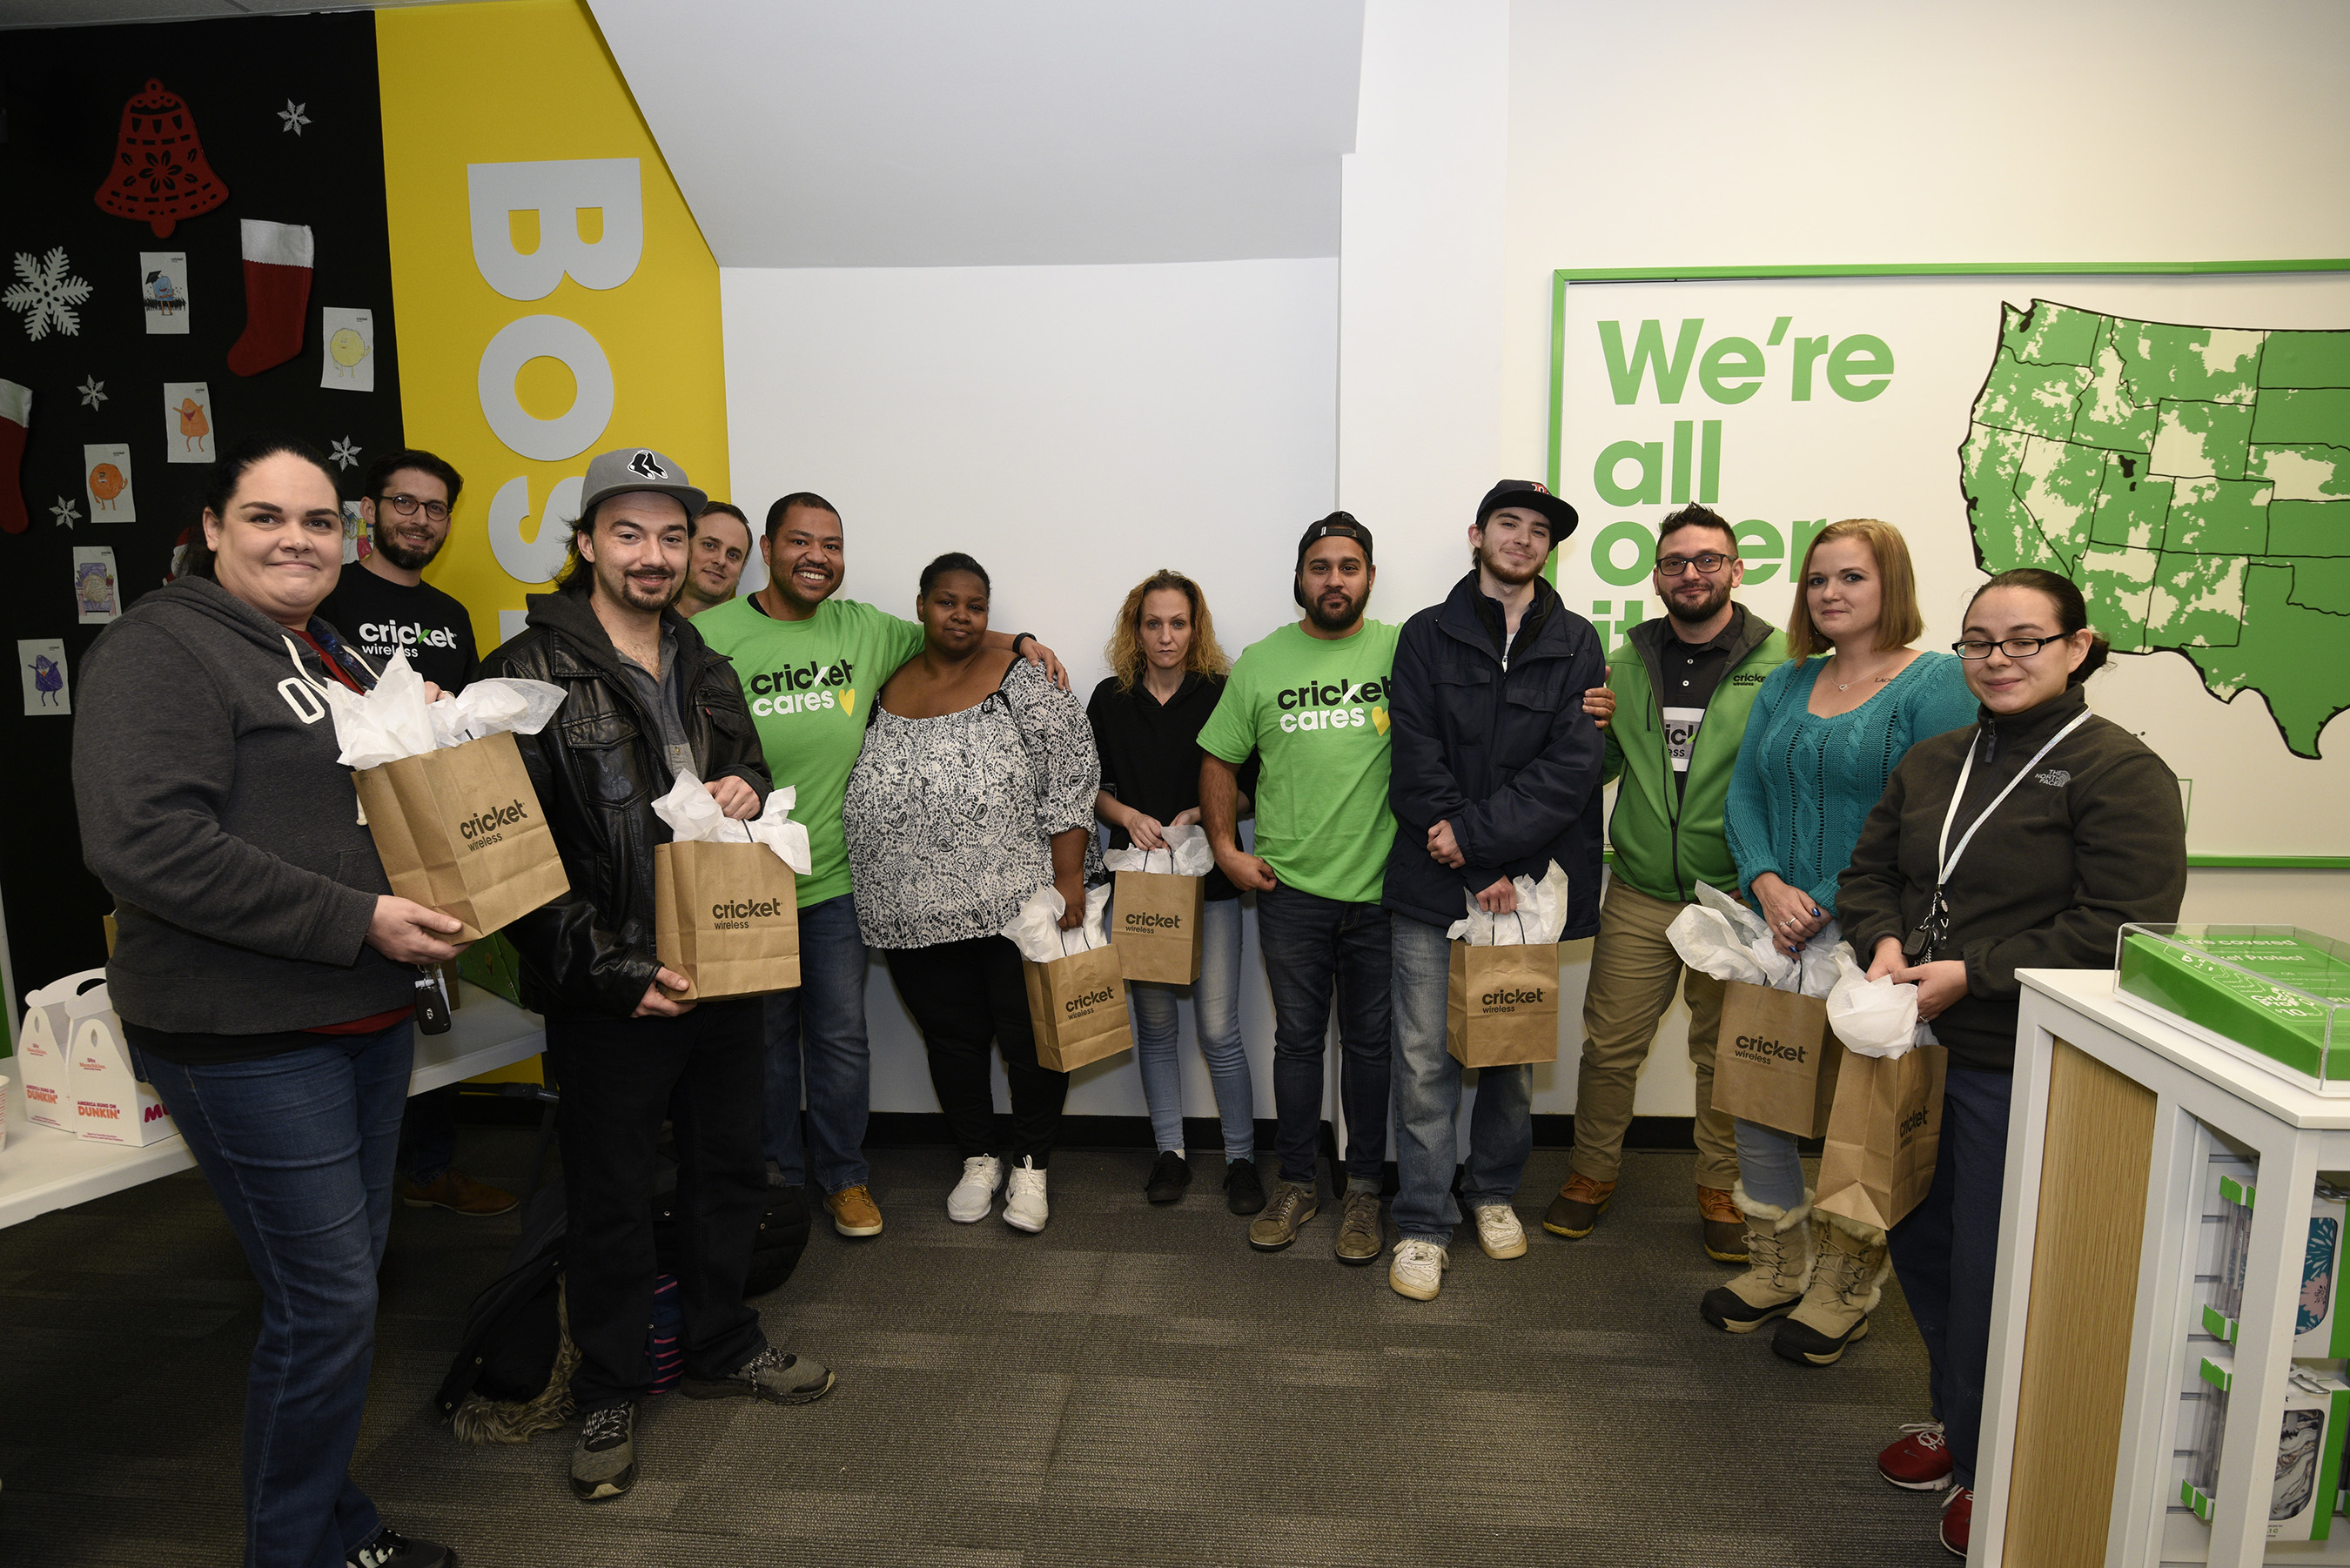 Despite a snowy day, Boston winners and Cricket employees gathered together to enjoy the holiday season and collect prizes.